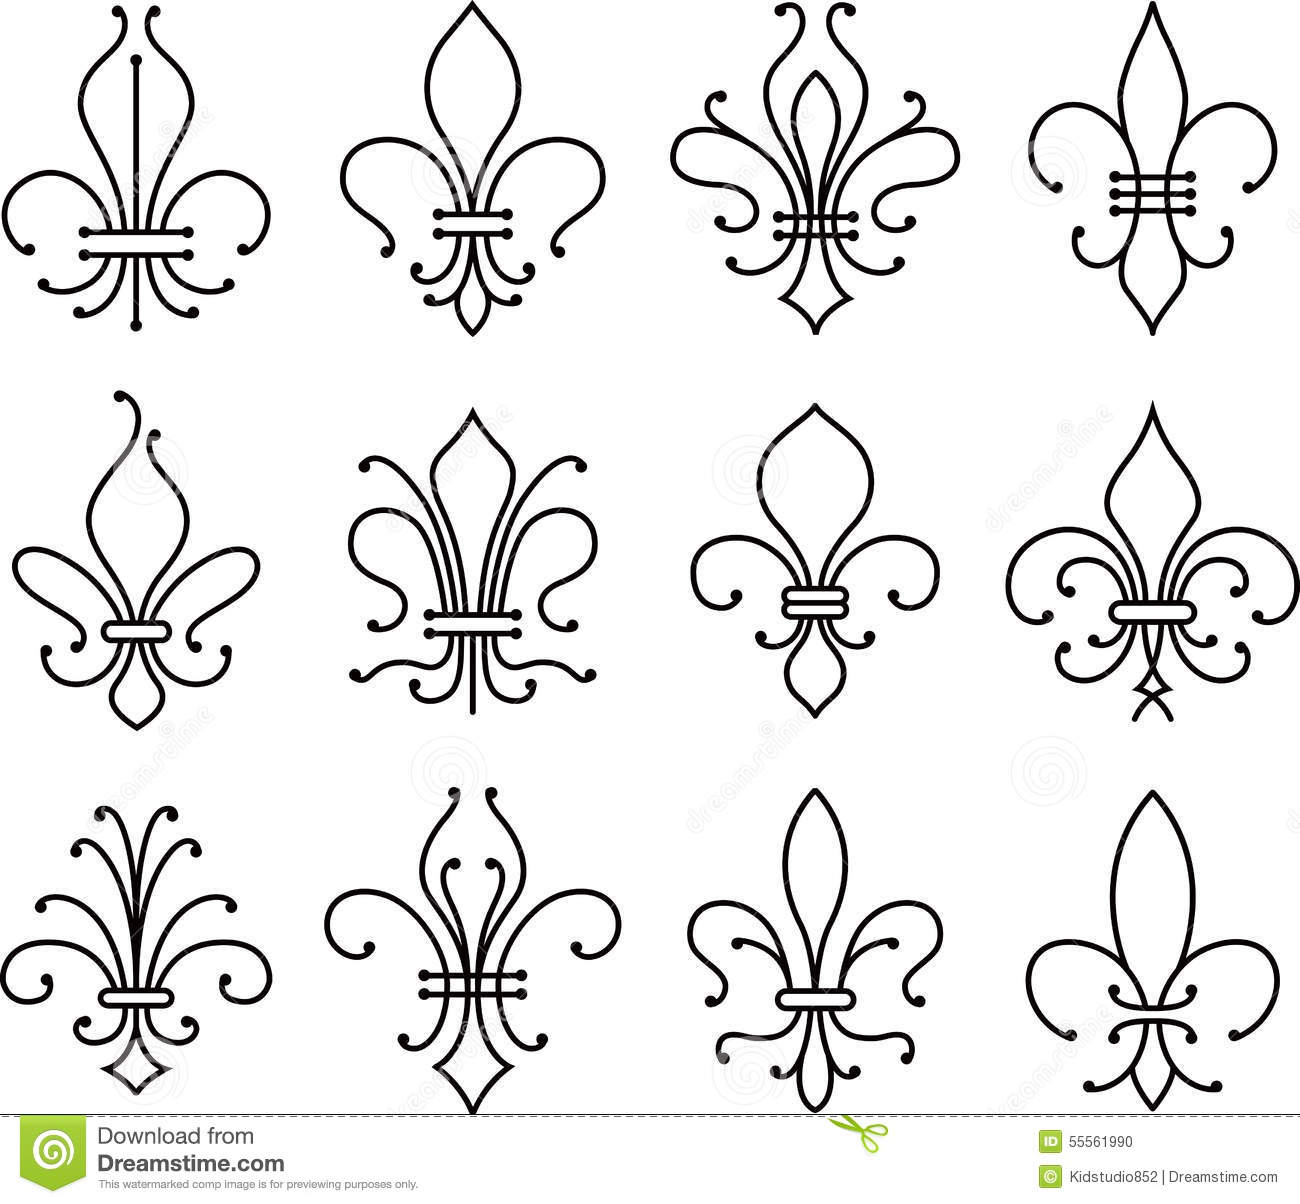 Fleur De Lys Scroll Elements Symbol Stock Vector Illustration Of King Decoration 55561990